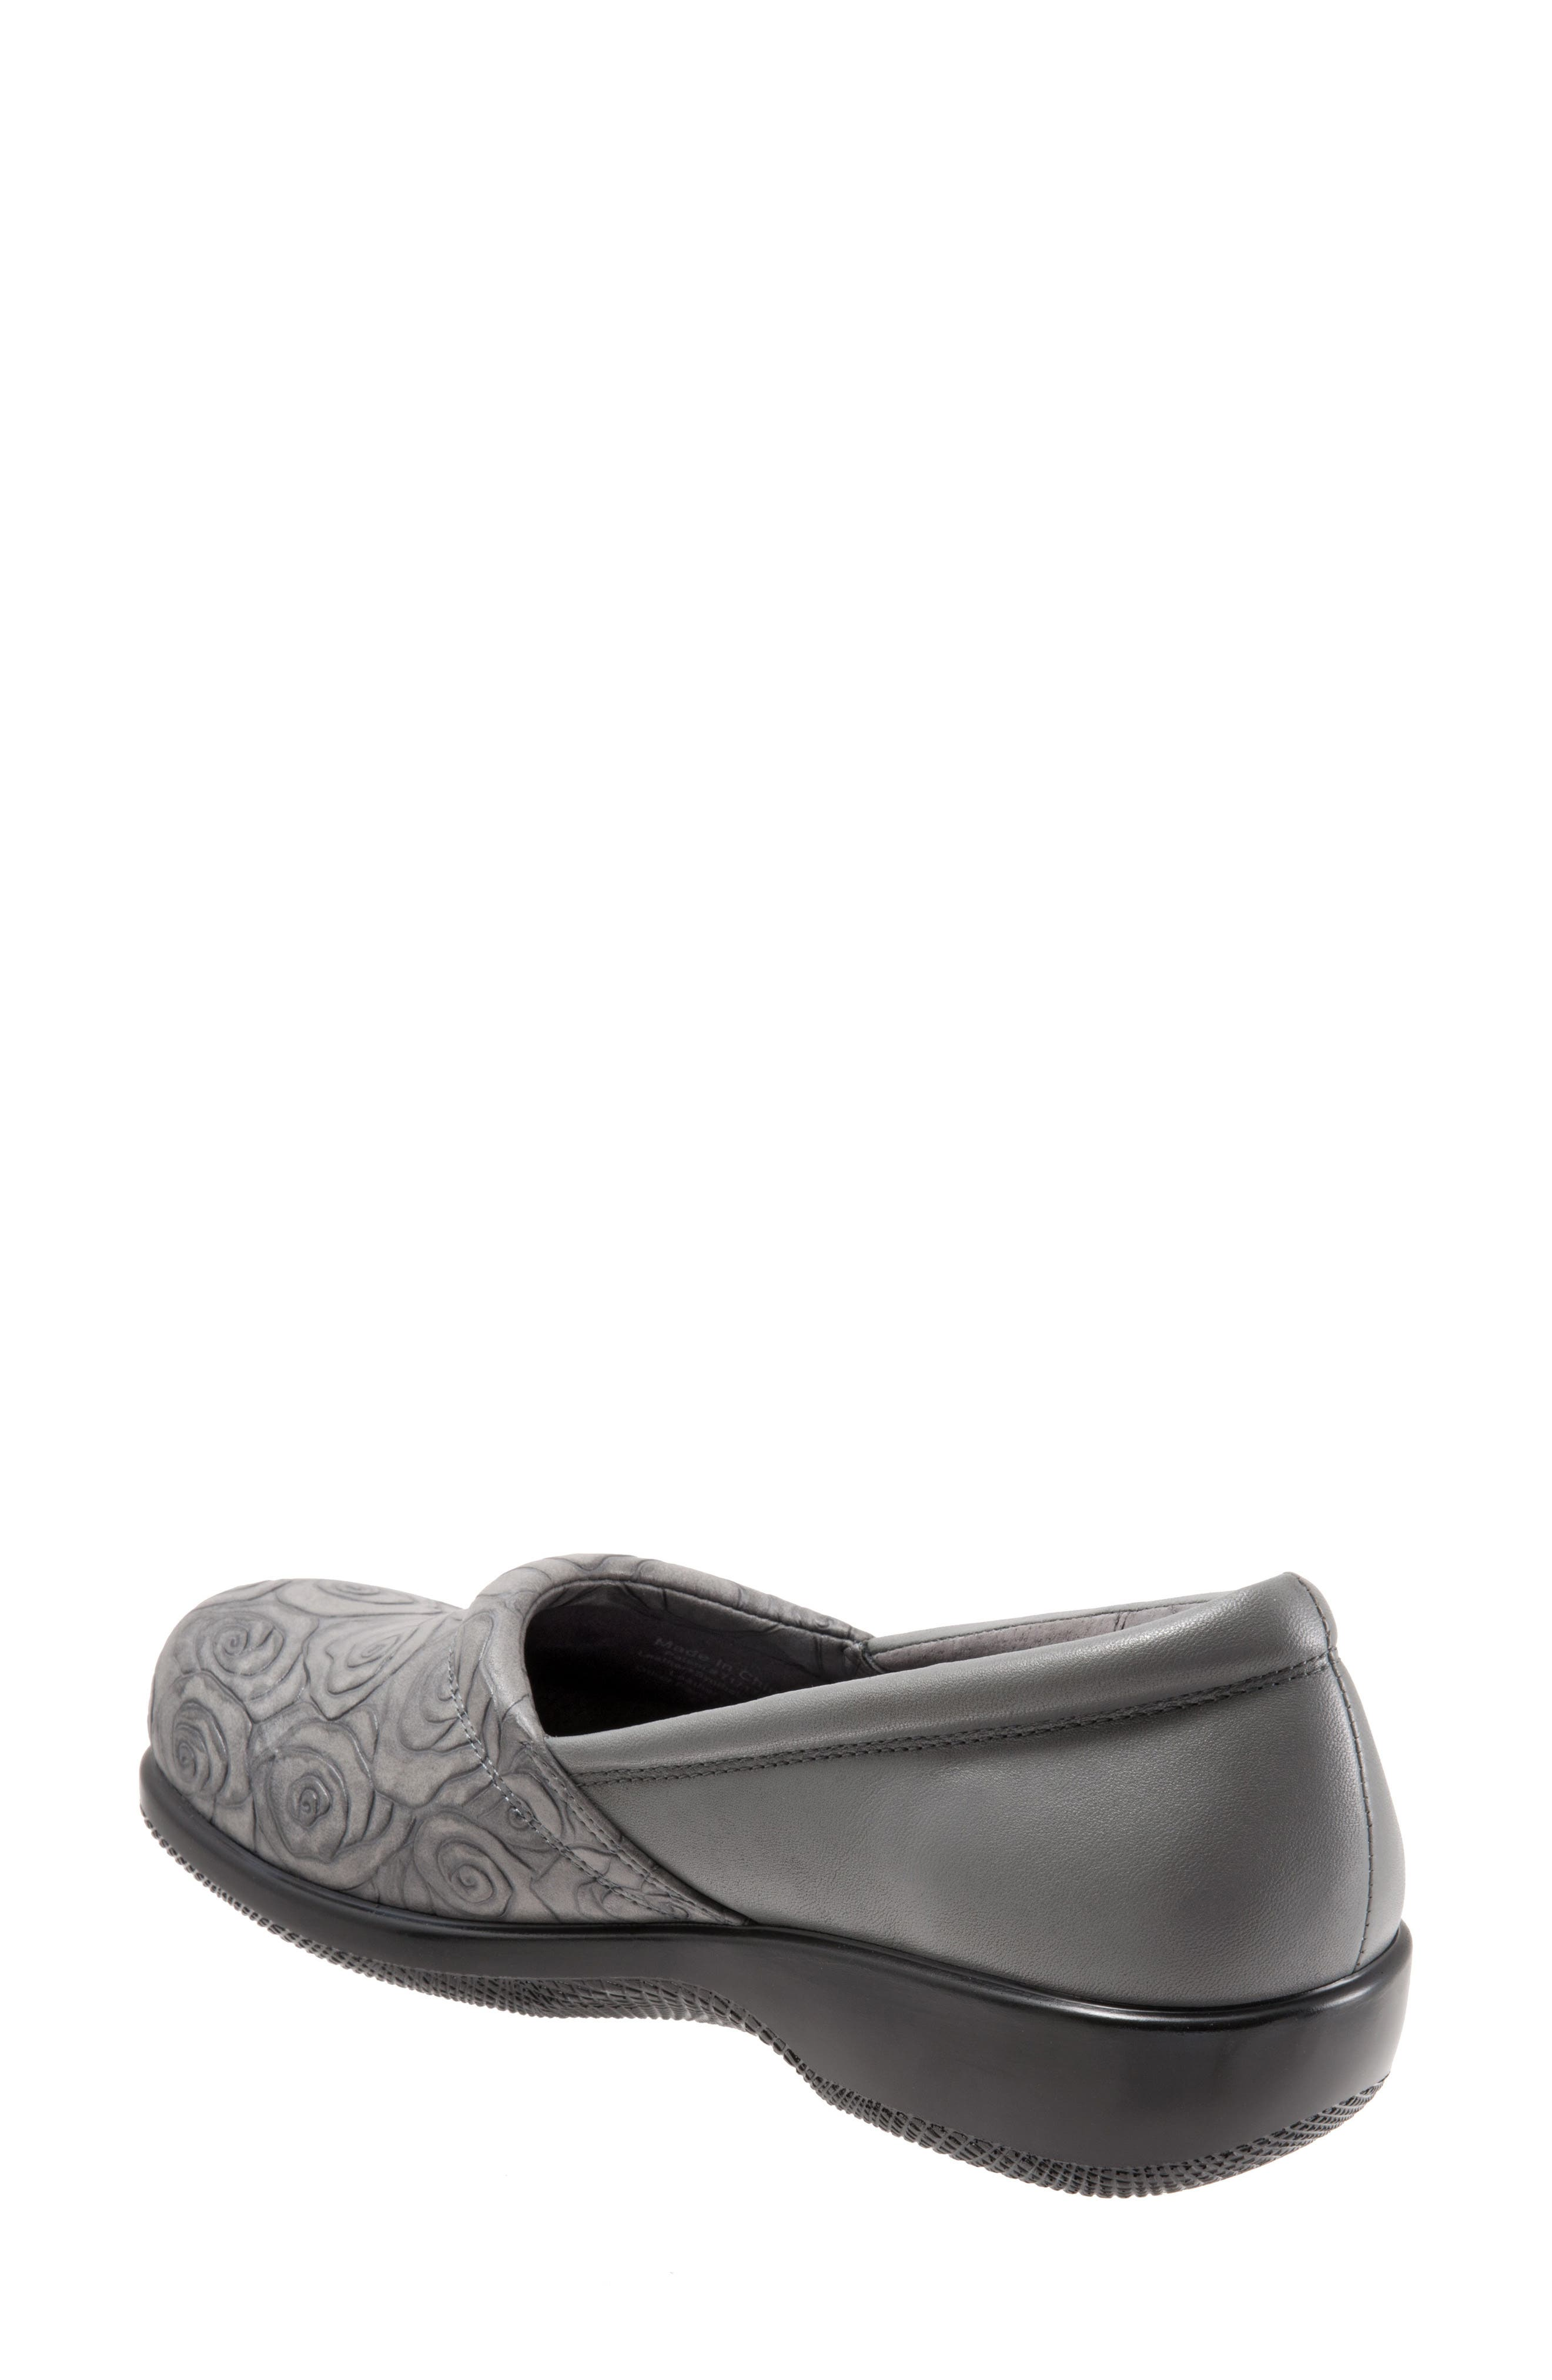 'Adora' Slip-On,                             Alternate thumbnail 4, color,                             GREY ROSE LEATHER